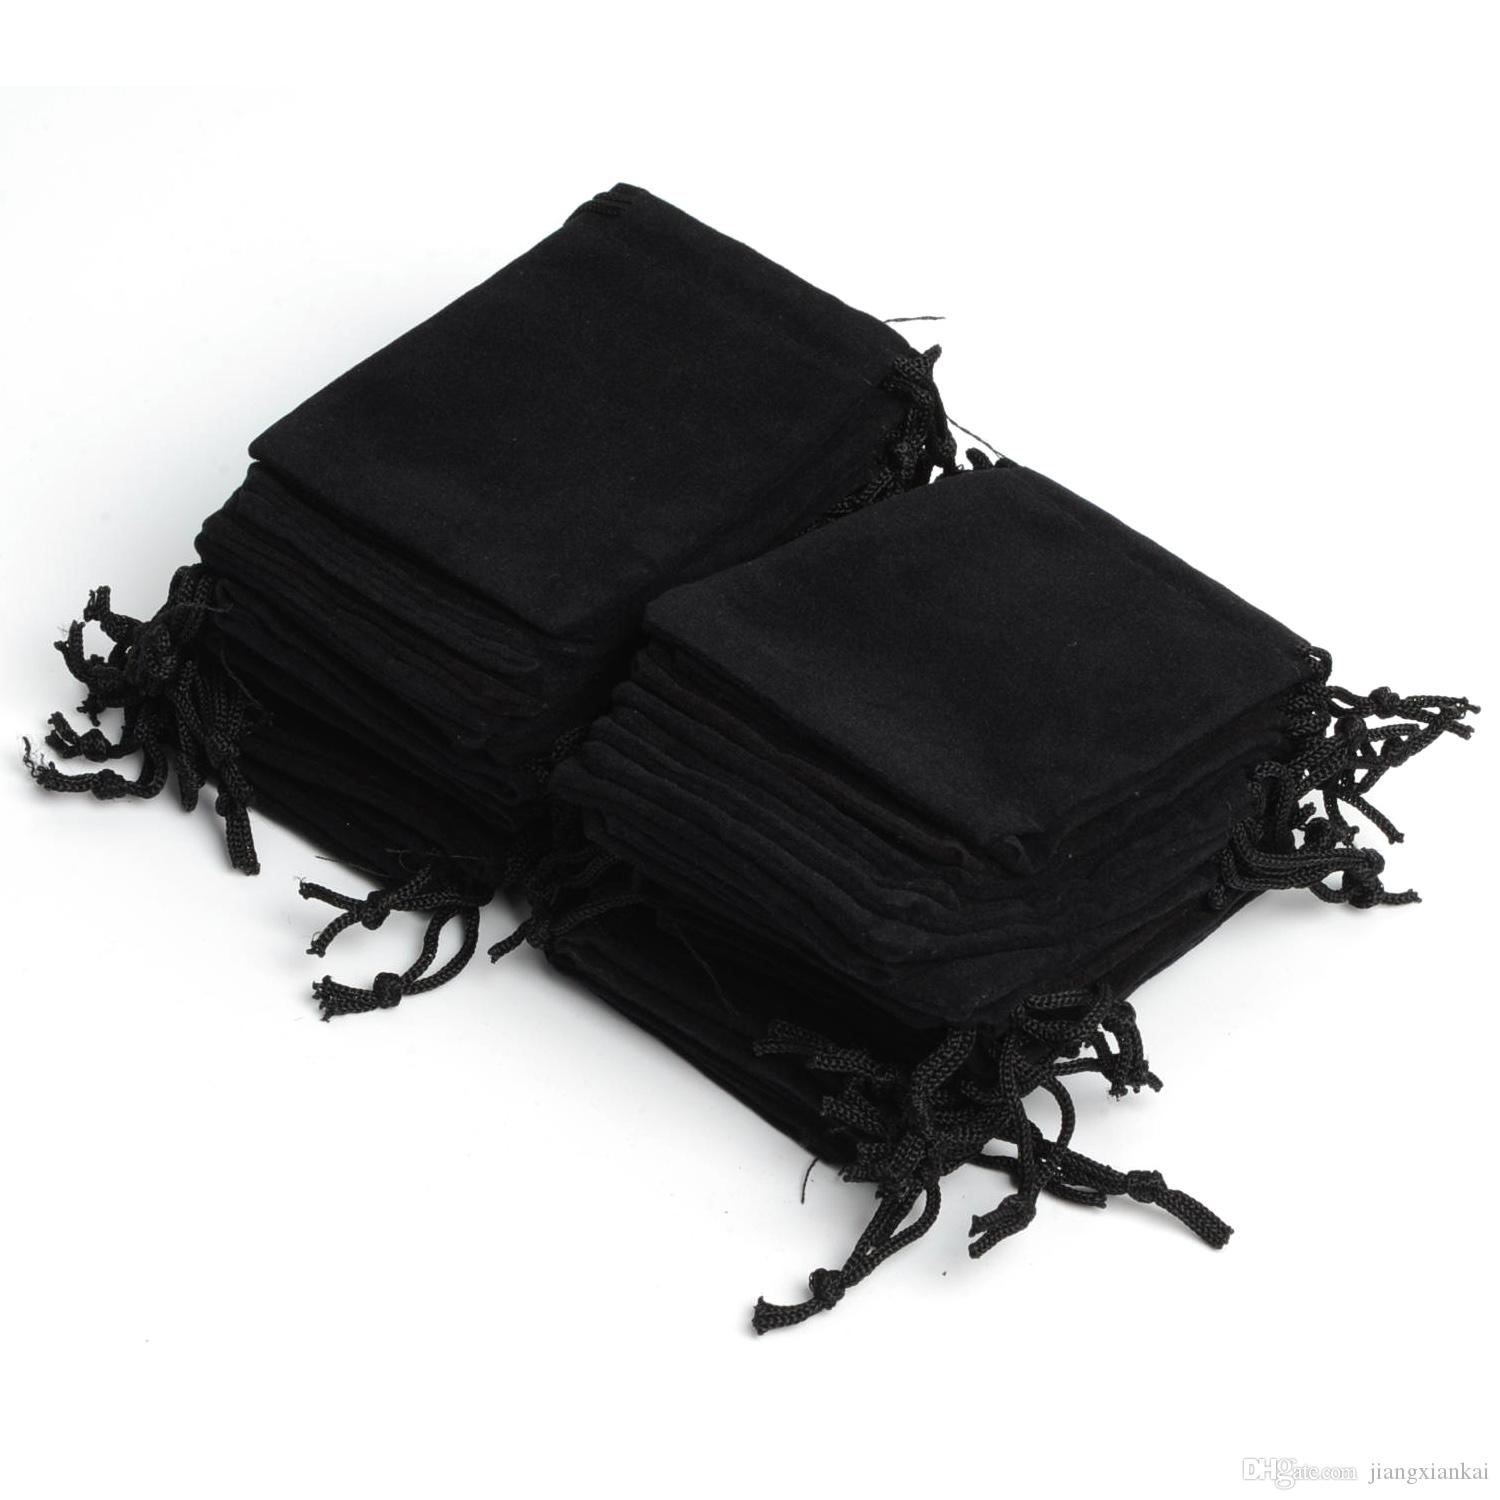 7x9cm velvet drawstring pouch bagjewelry bagchristmaswedding 7x9cm velvet drawstring pouch bagjewelry bagchristmaswedding birthday easter party halloween party gift bag gift bag pouch gift bag velvet pouch bag negle